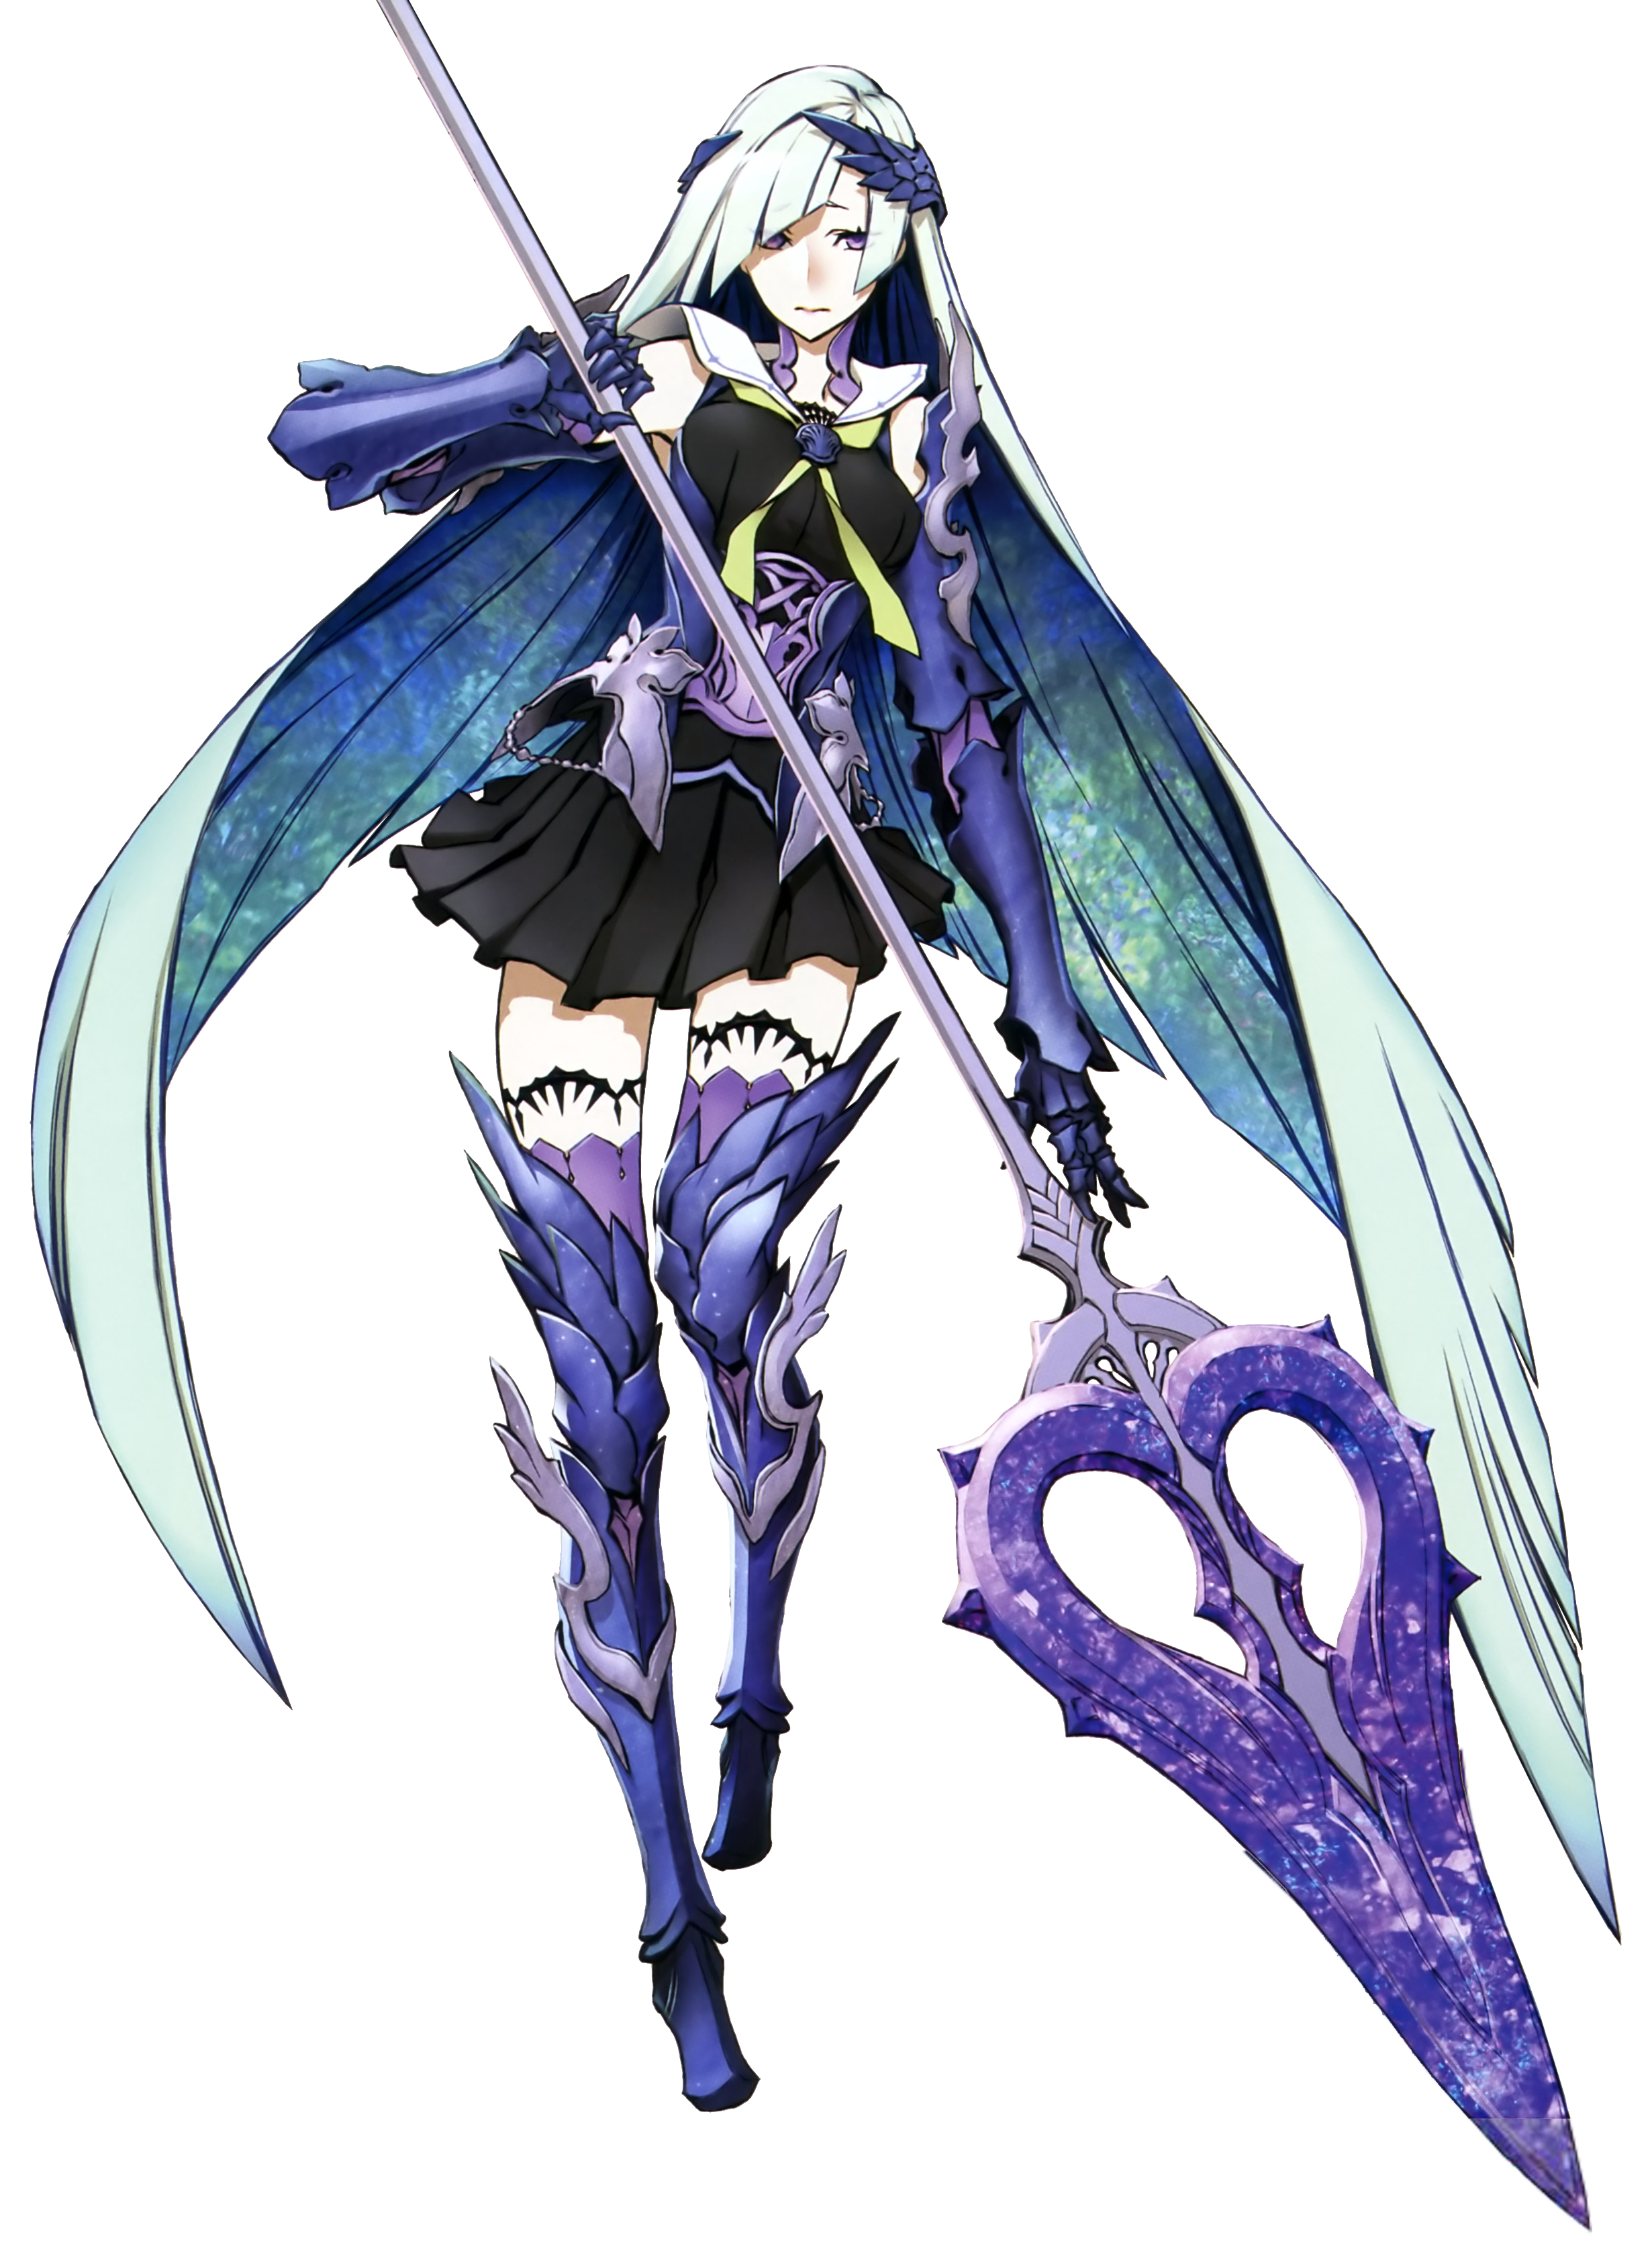 Lancer (Fate/Prototype Fragments) (With images) Anime